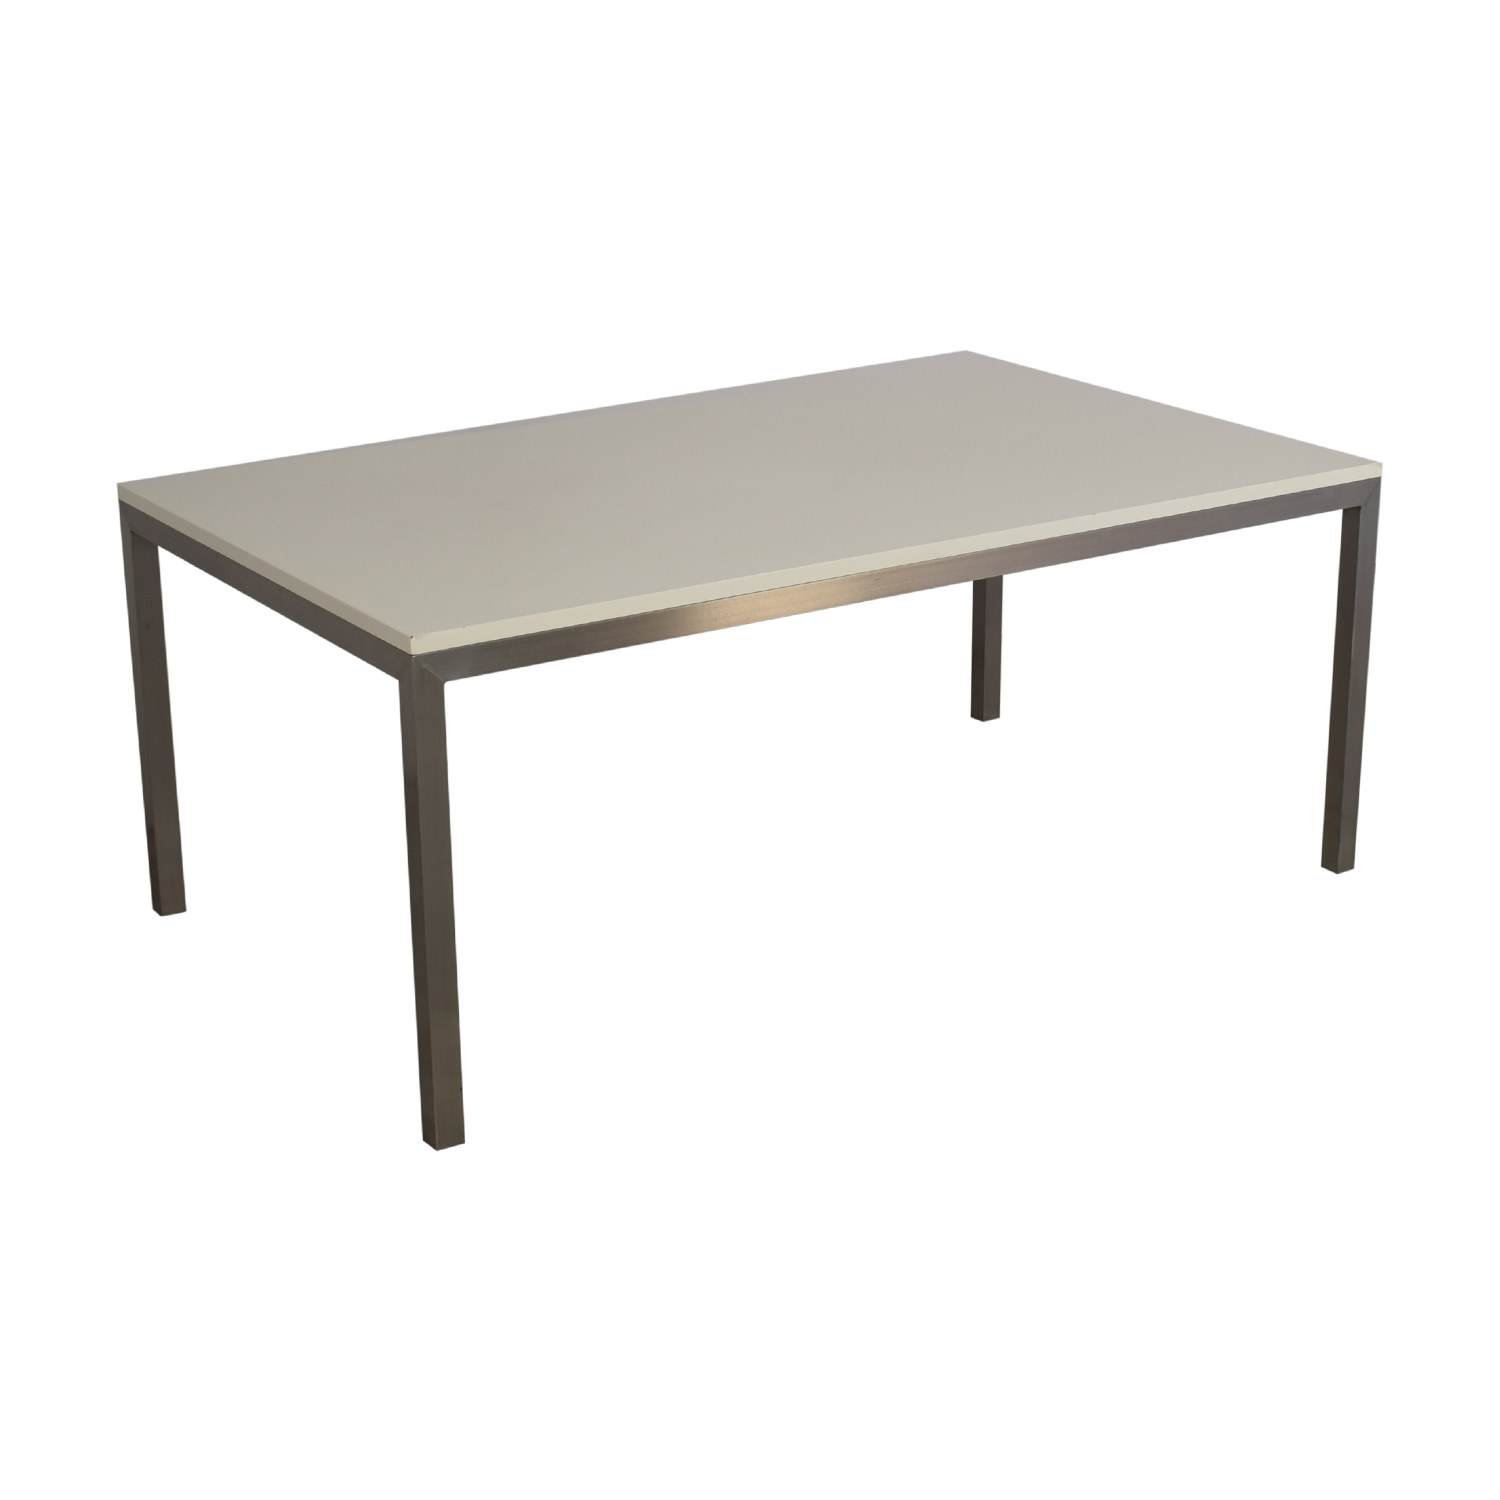 buy Crate & Barrel Parsons Dining Table Crate & Barrel